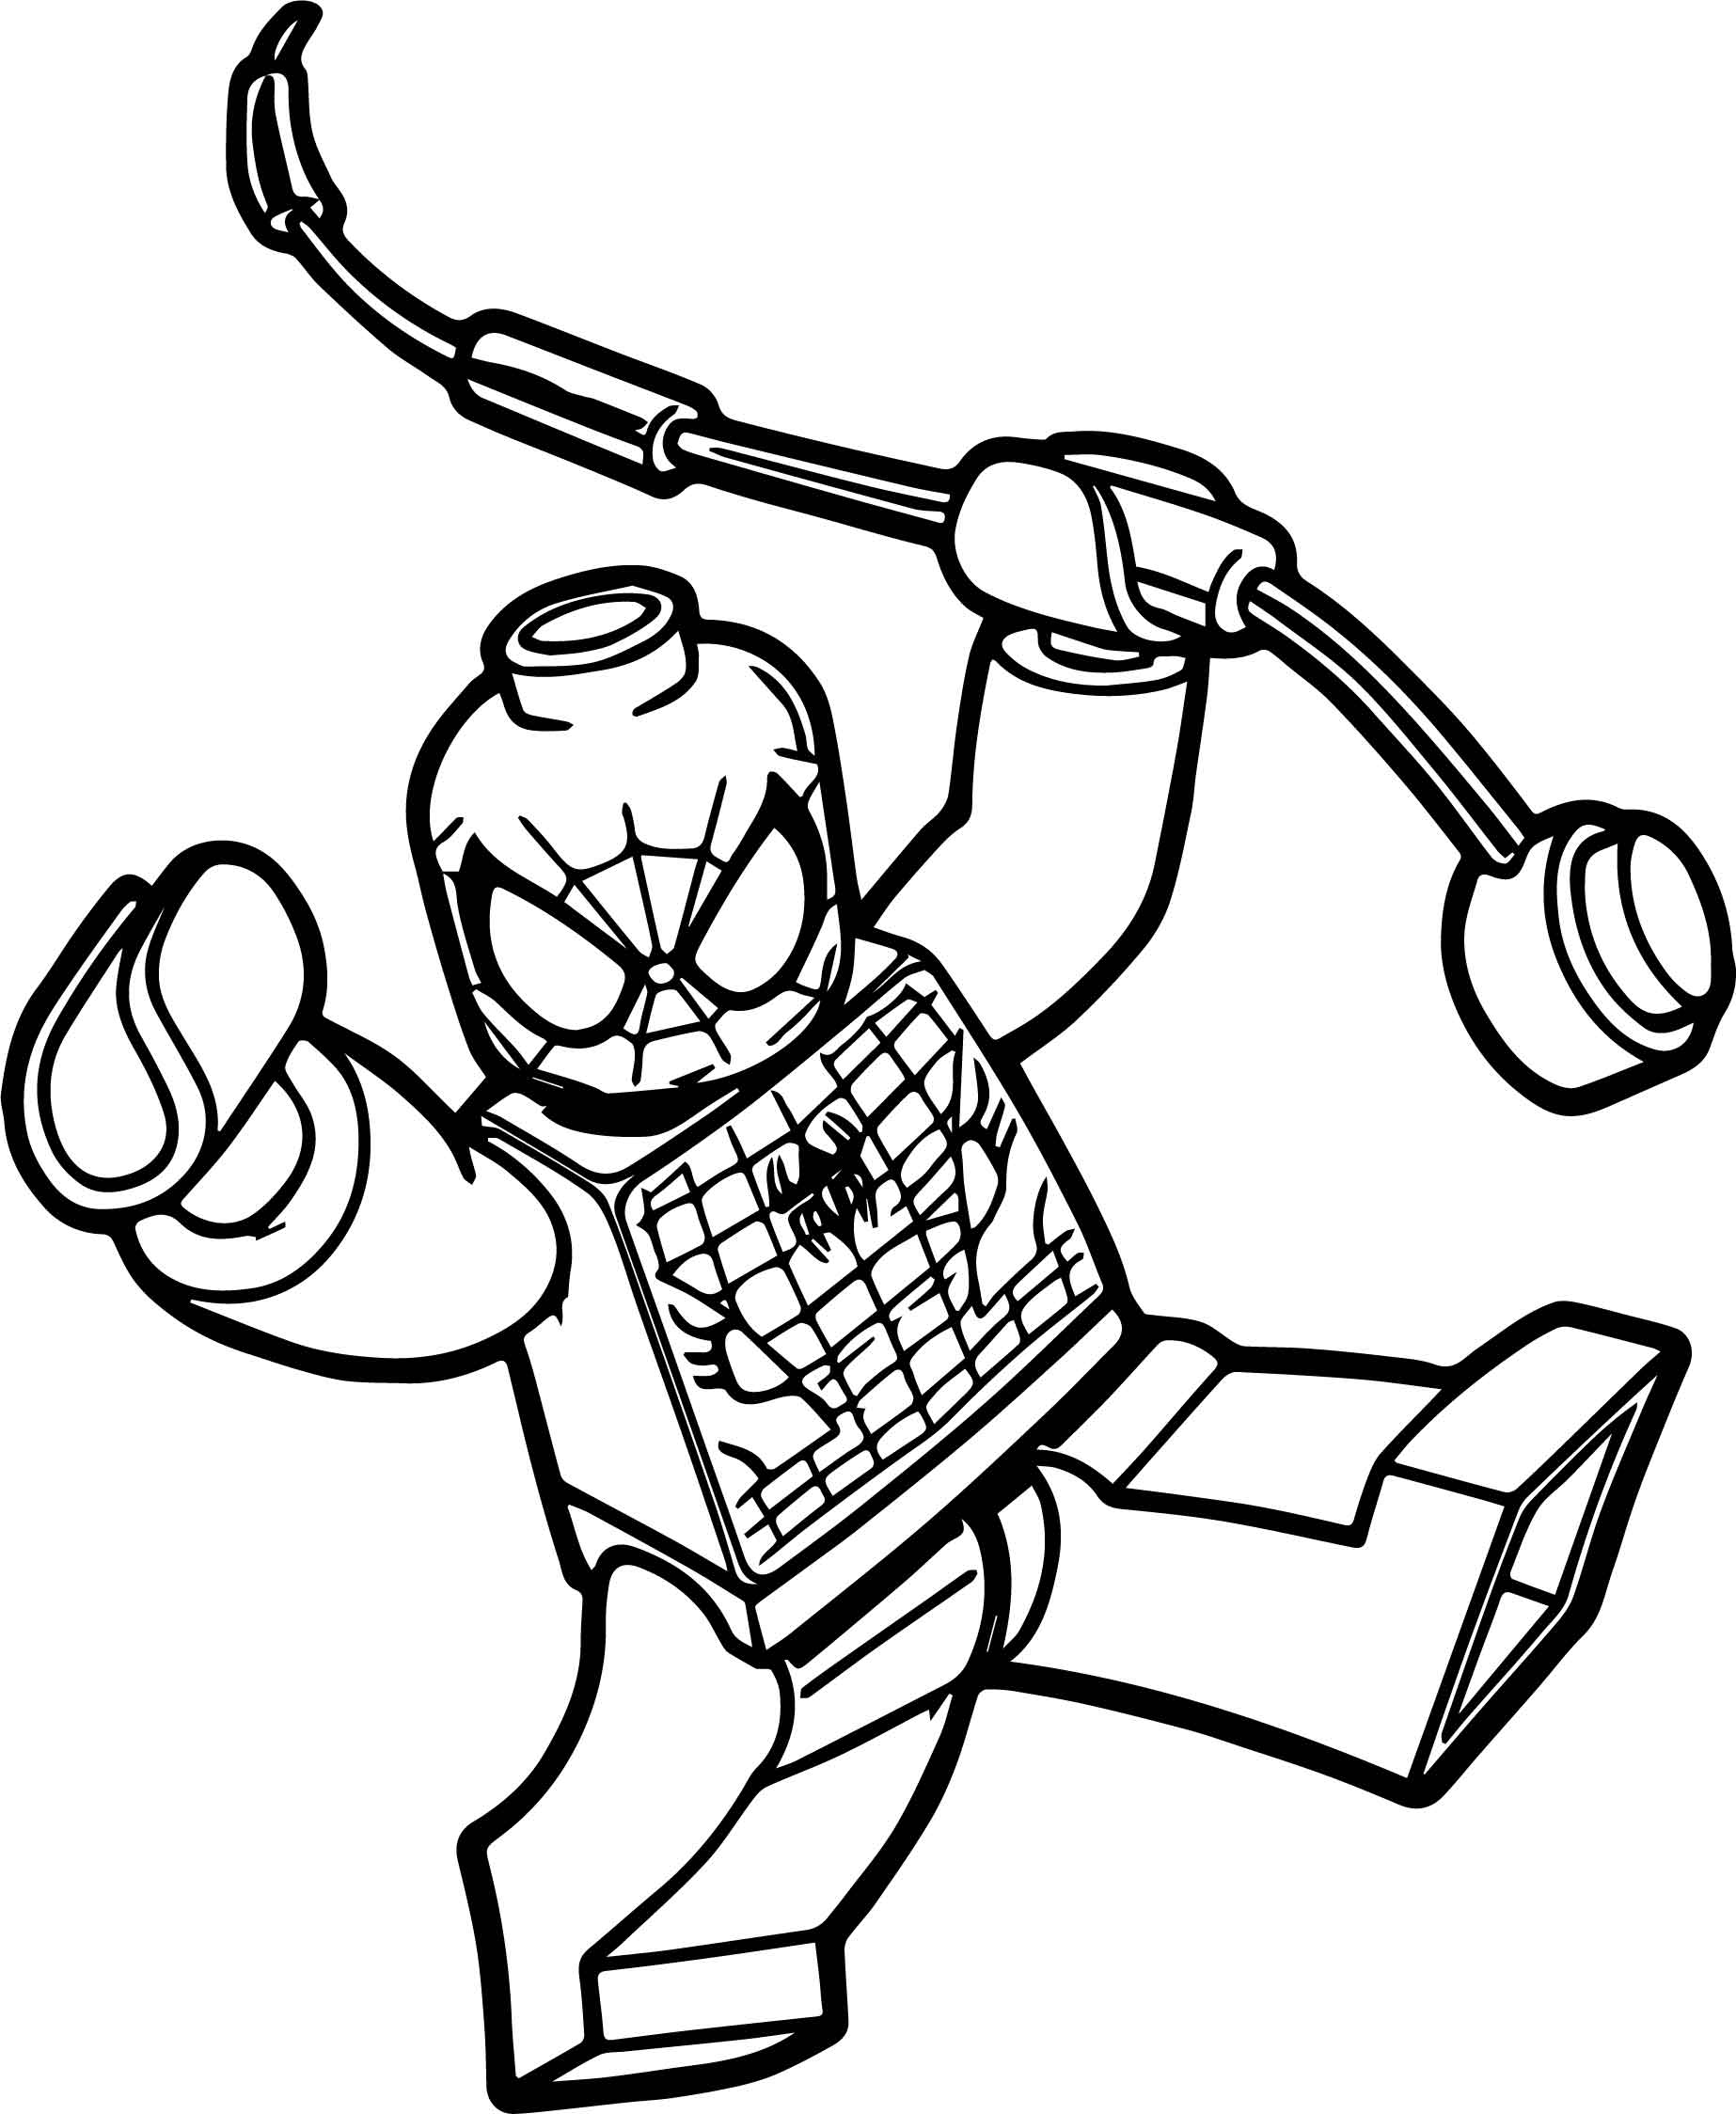 spiderman car coloring pages spiderman car coloring pages print coloring 2019 spiderman car pages coloring